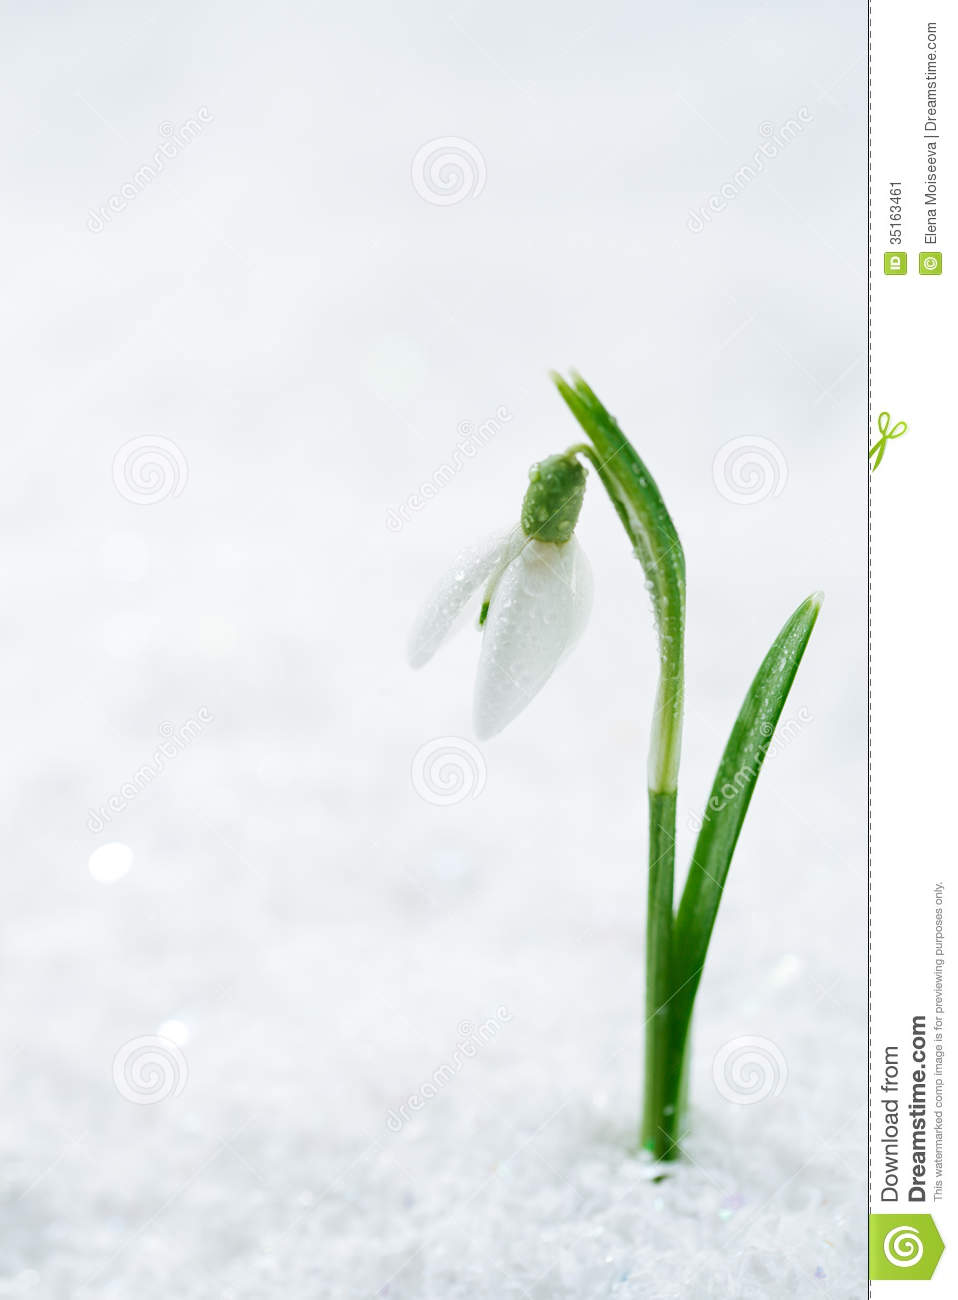 Free Fall Flowers Wallpaper Snowdrop Flower On White Studio Snow Soft Focus Perfect